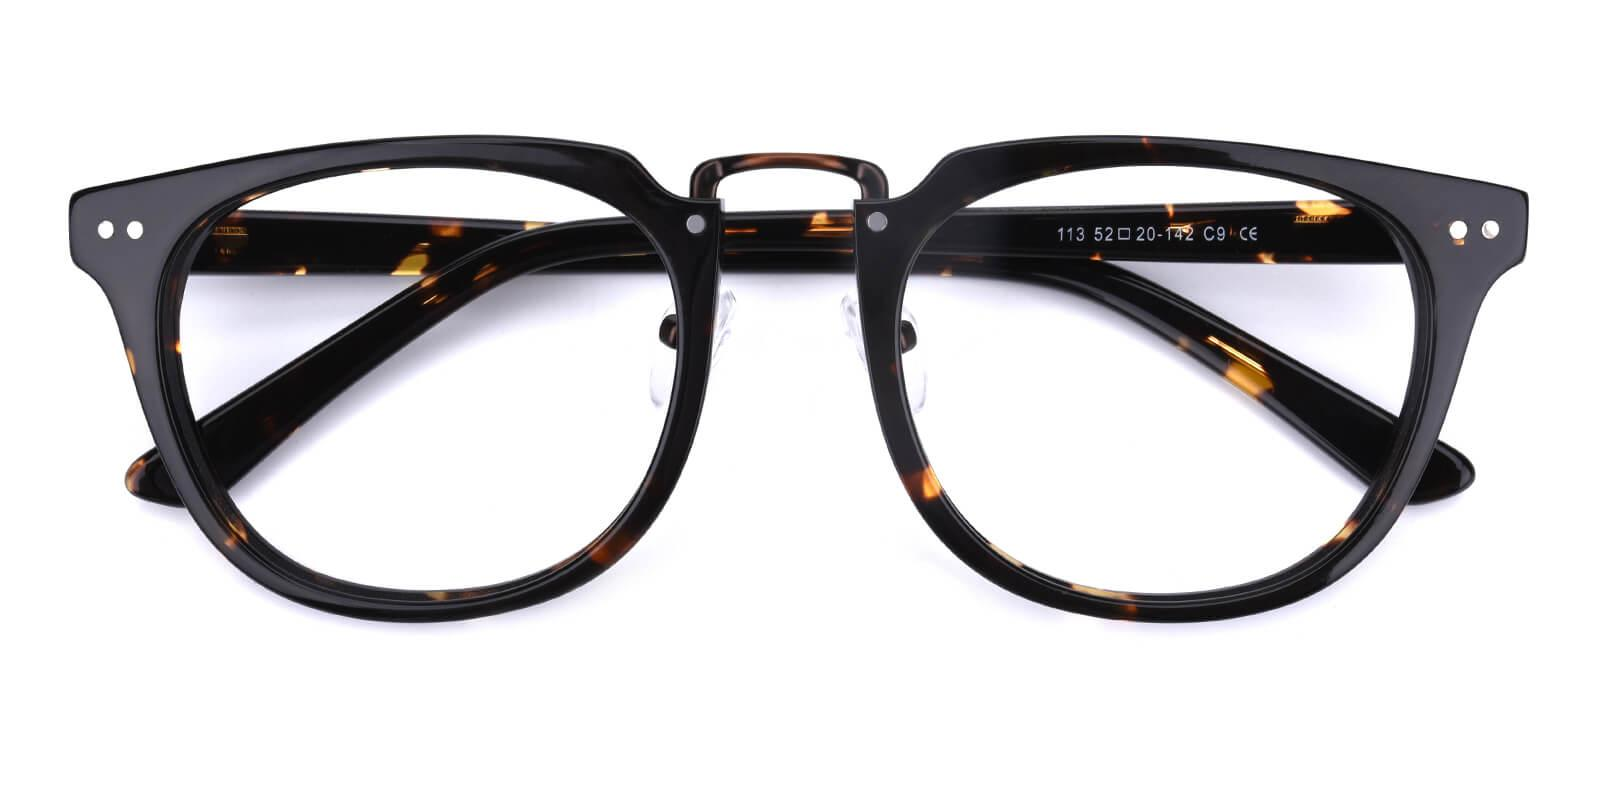 Crave-Tortoise-Square-Acetate-Eyeglasses-detail